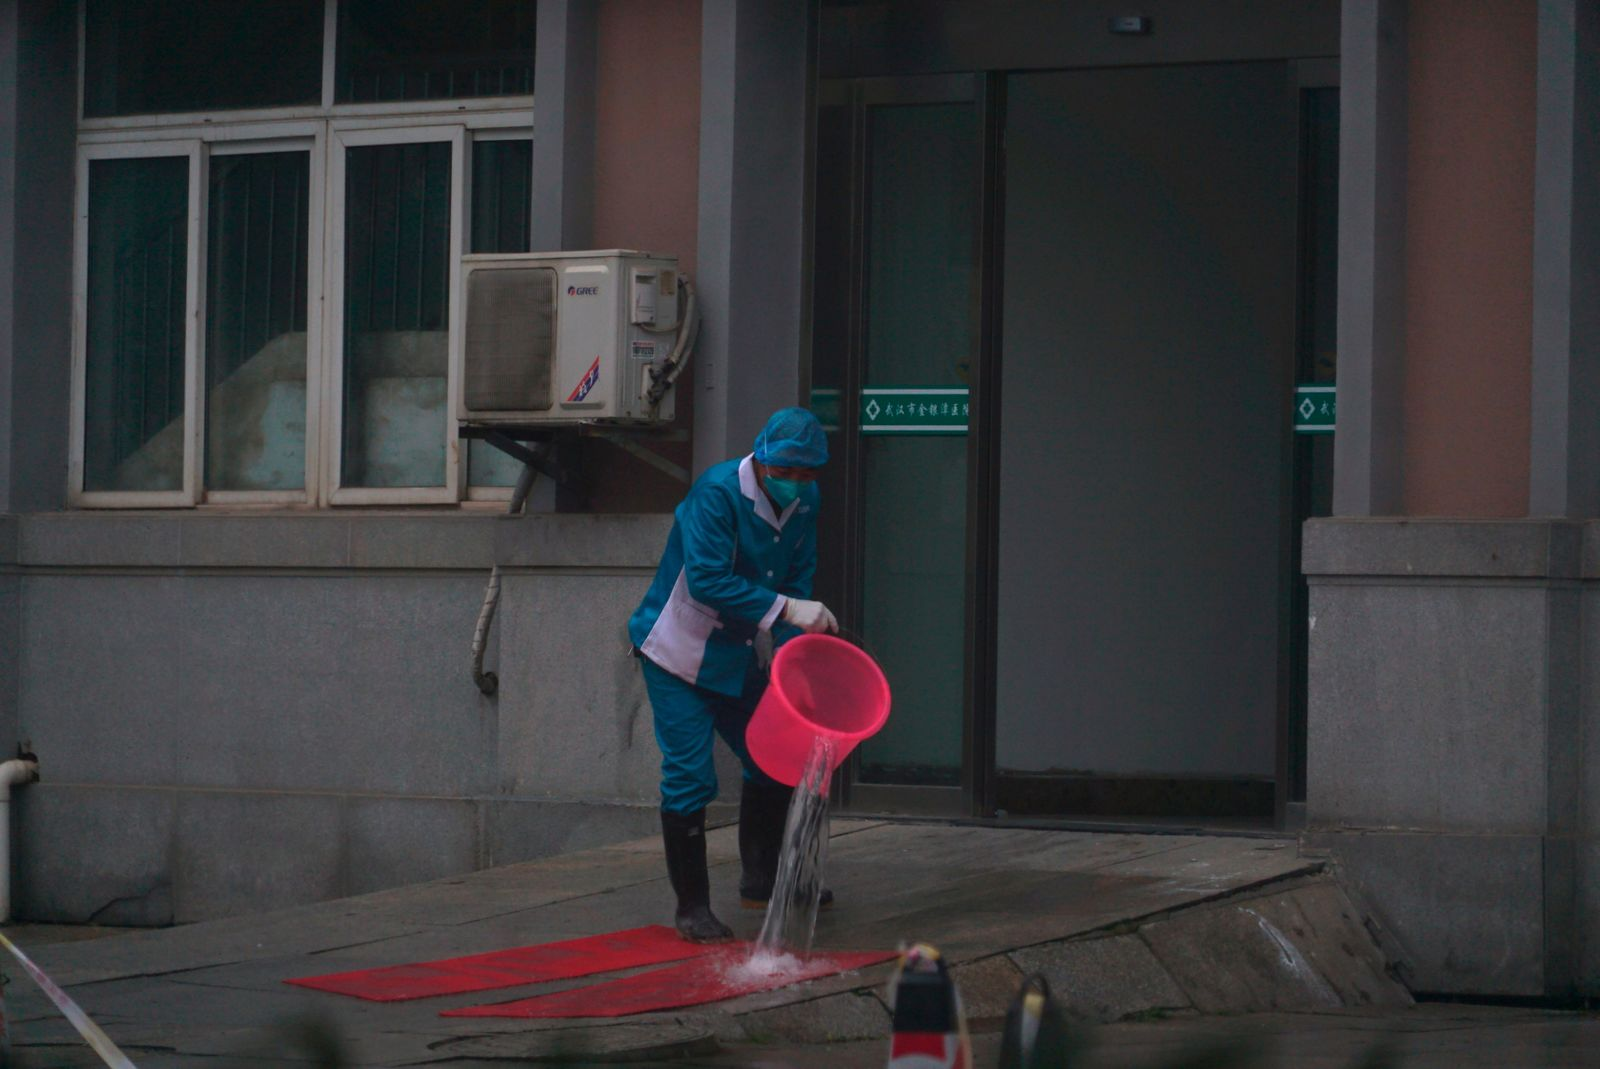 Hospital staff wash the emergency entrance of Wuhan Medical Treatment Center, where some infected with a new virus are being treated, in Wuhan, China, Wednesday, Jan. 22, 2020. The number of cases of a new coronavirus from Wuhan has risen to over 400 in China health authorities said Wednesday. (AP Photo/Dake Kang)